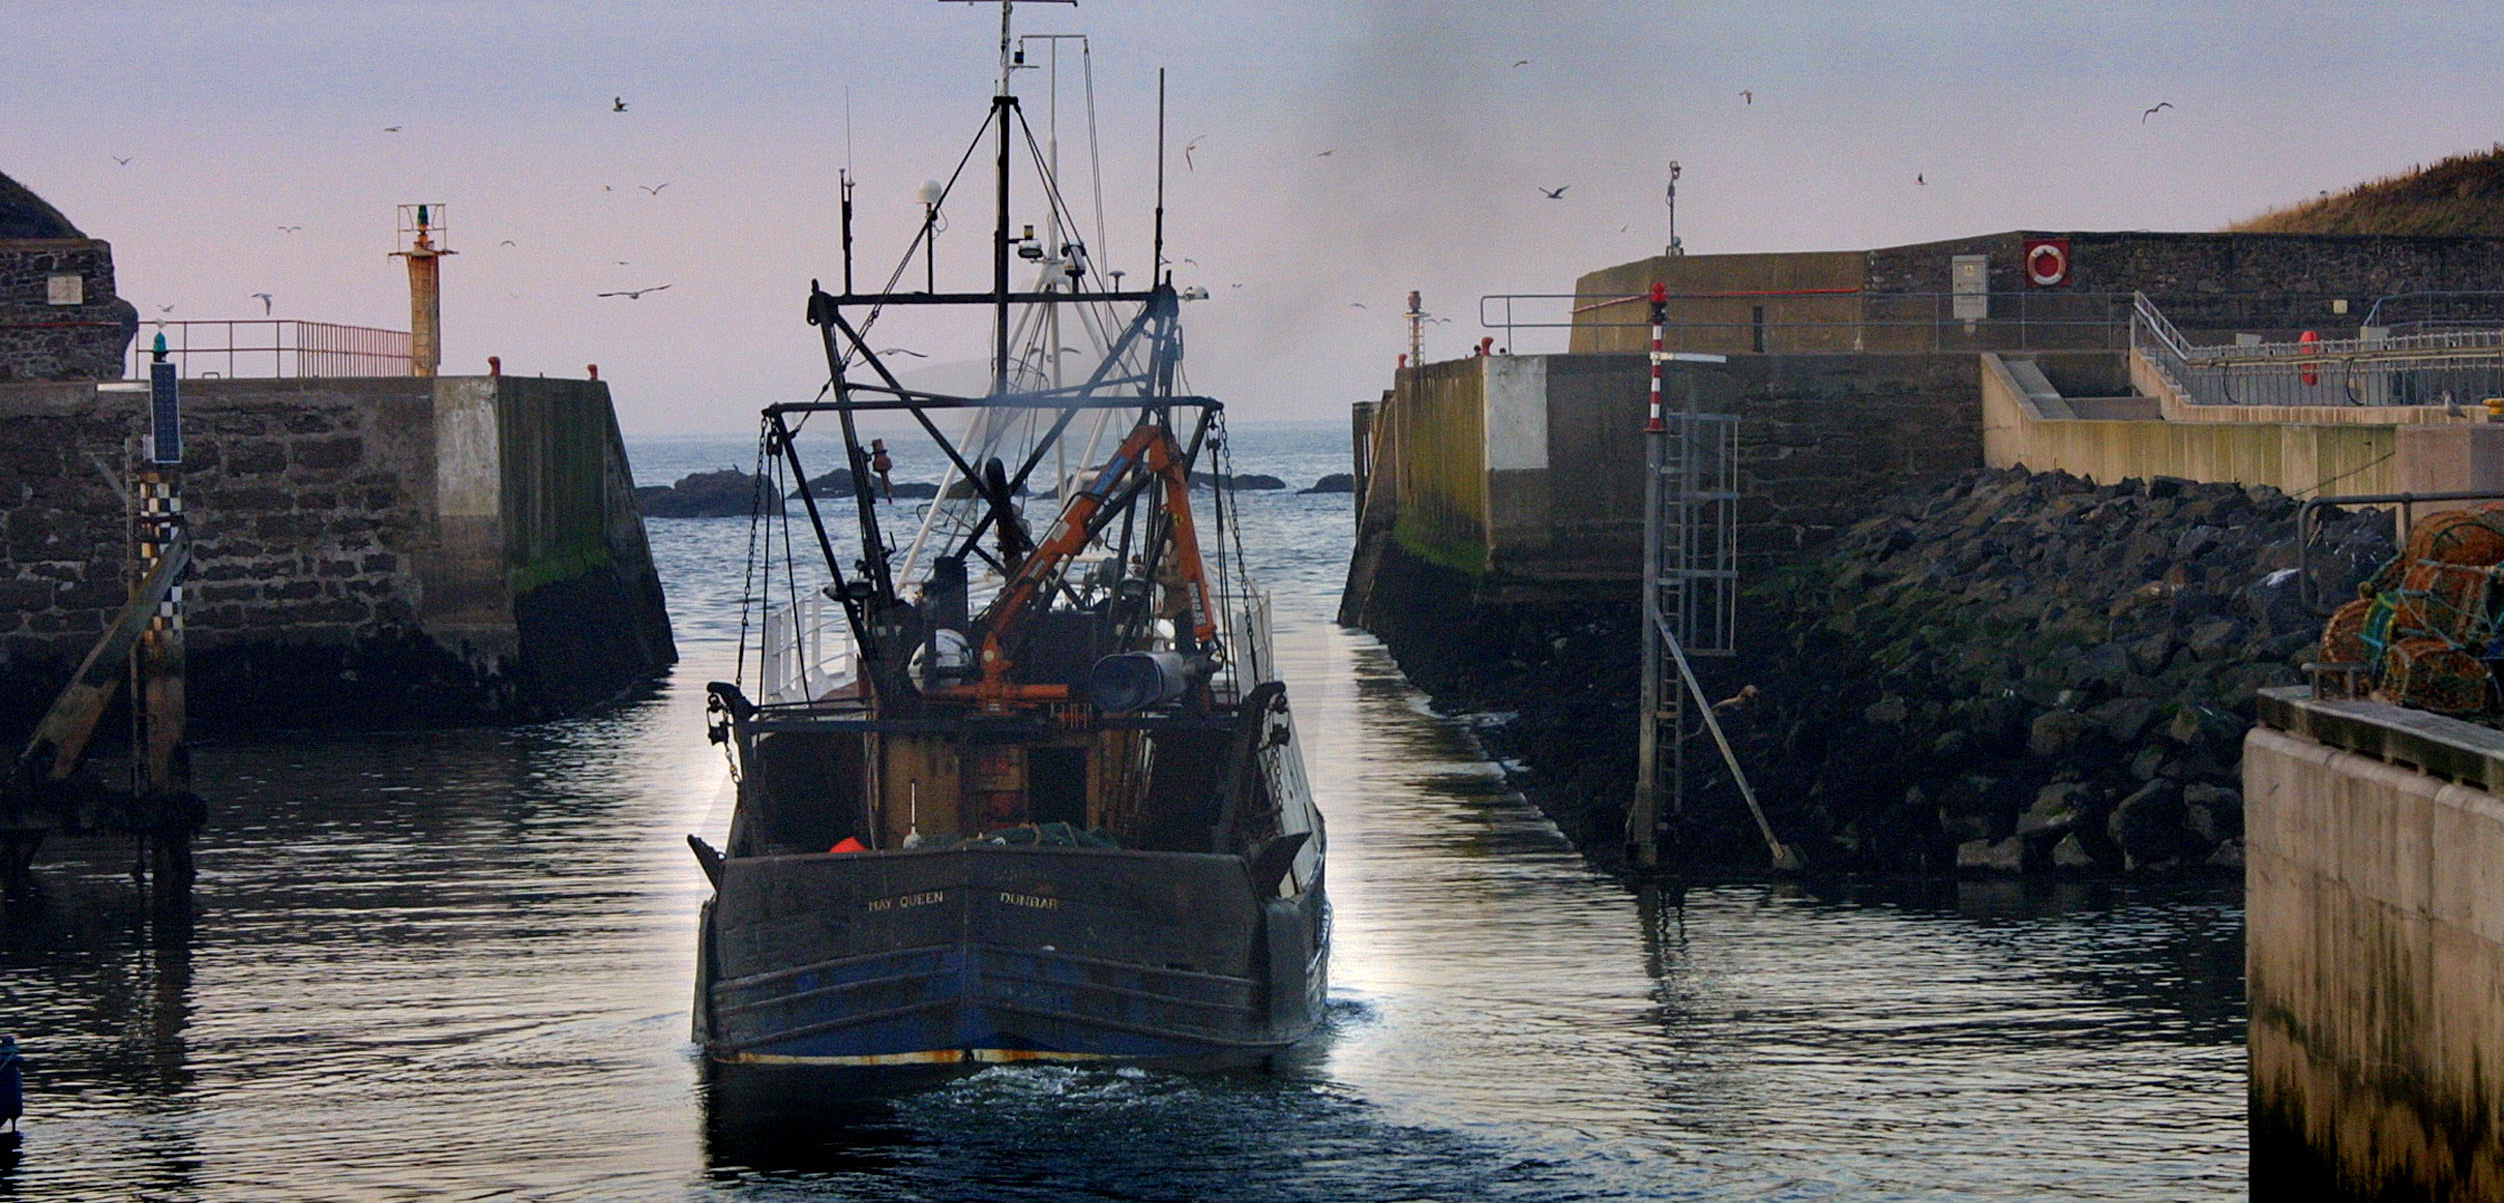 A fishing boat leaves from Eyemouth, Scotland, on October 31, 2002. Photo by Colin McPherson/Corbis